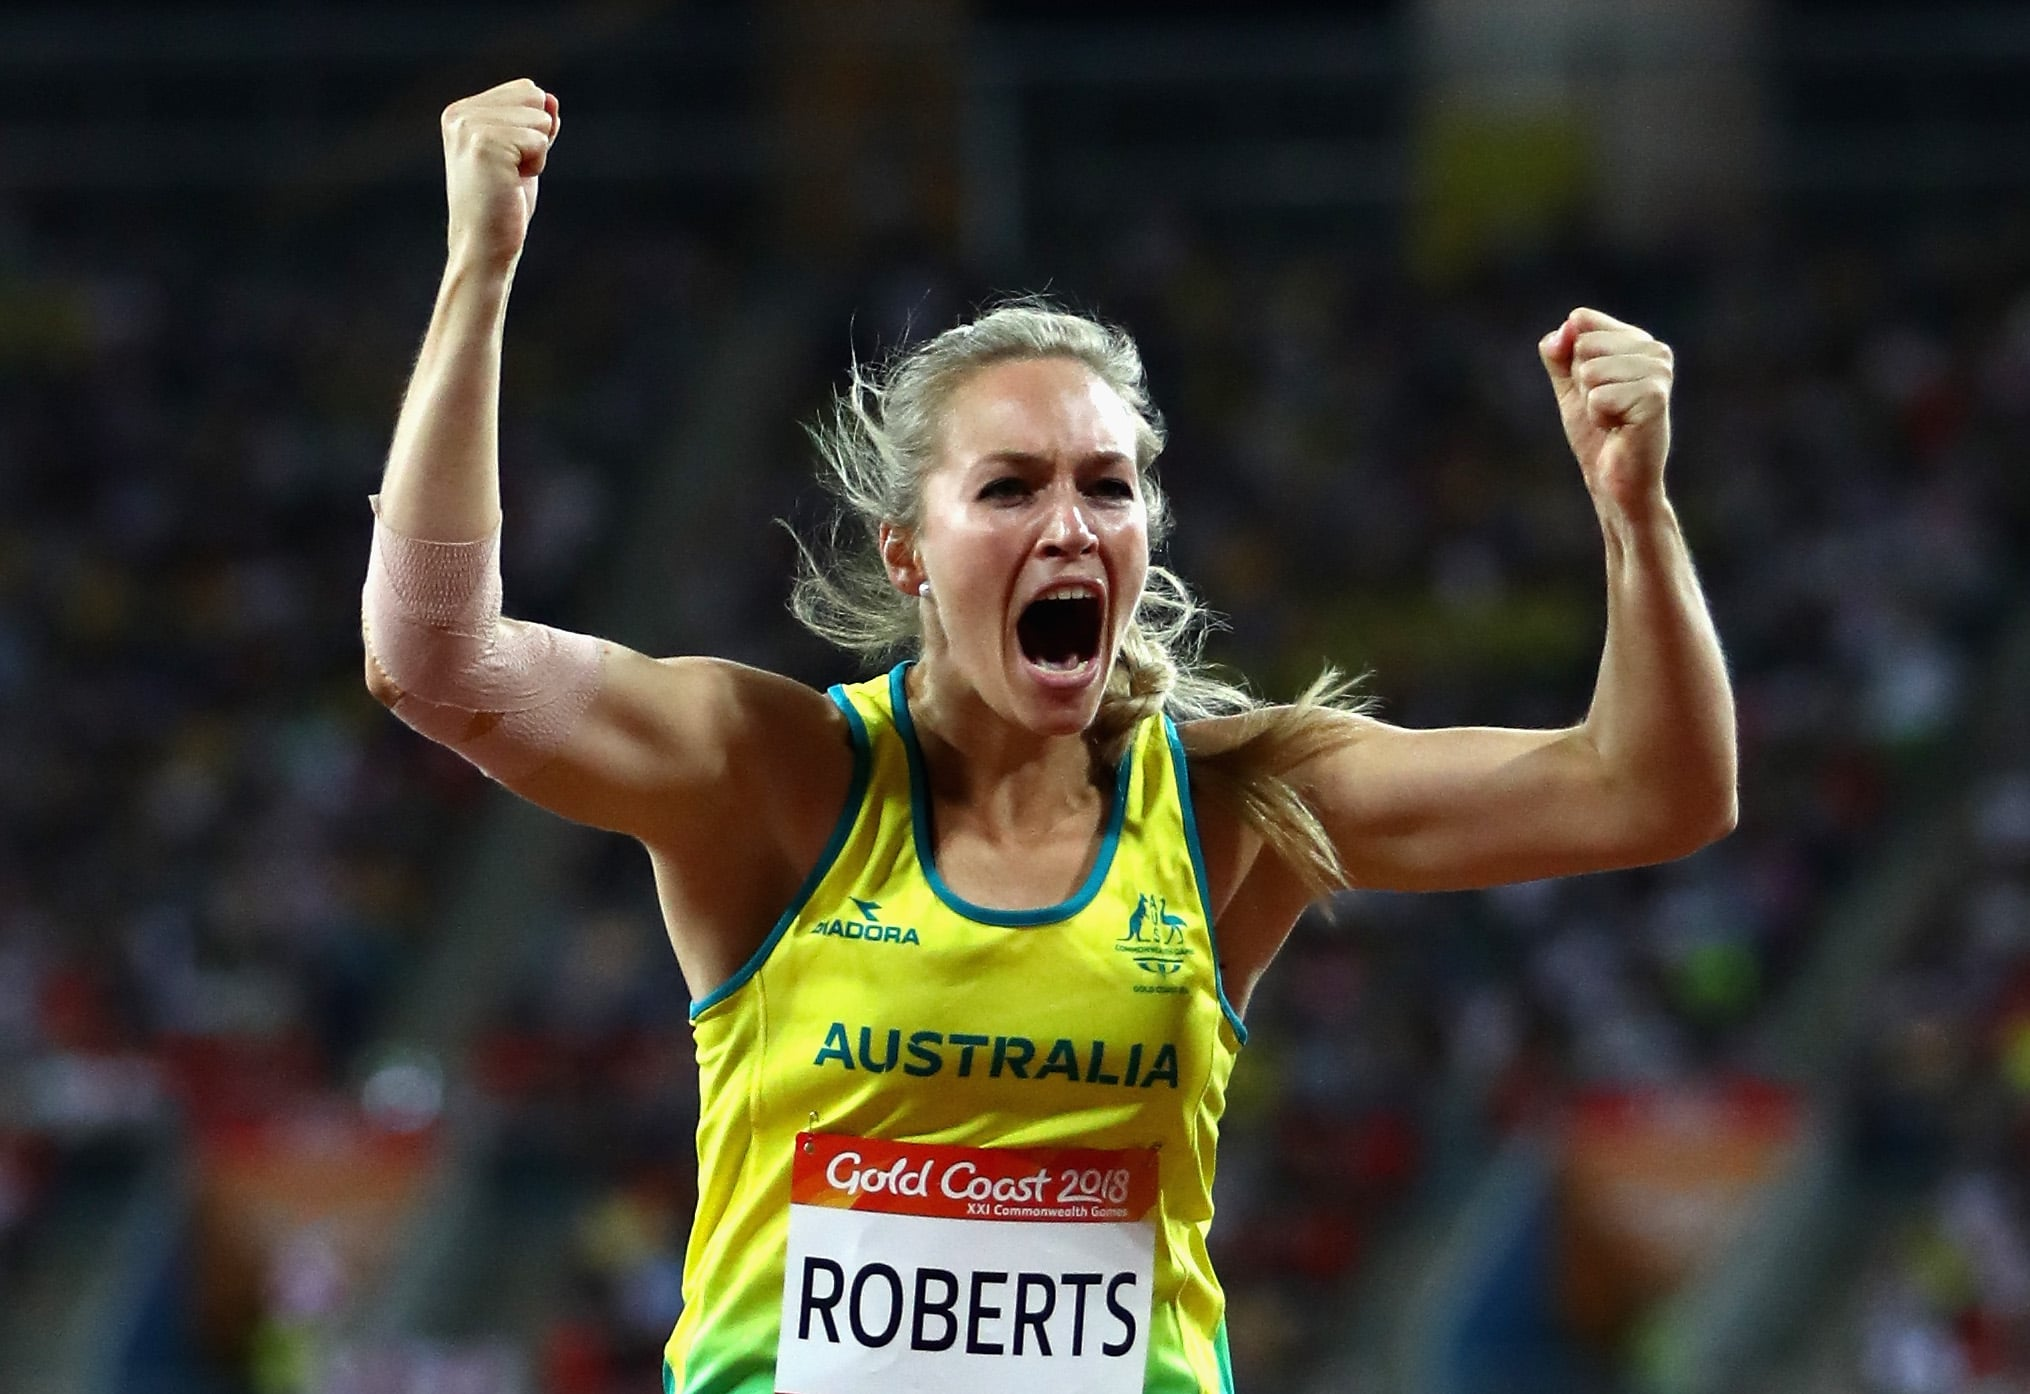 GOLD COAST, AUSTRALIA - APRIL 11:  Kelsey-Lee Roberts of Australia celebrates winning silver in the Women's Javelin final during athletics on day seven of the Gold Coast 2018 Commonwealth Games at Carrara Stadium on April 11, 2018 on the Gold Coast, Australia.  (Photo by Michael Steele/Getty Images)